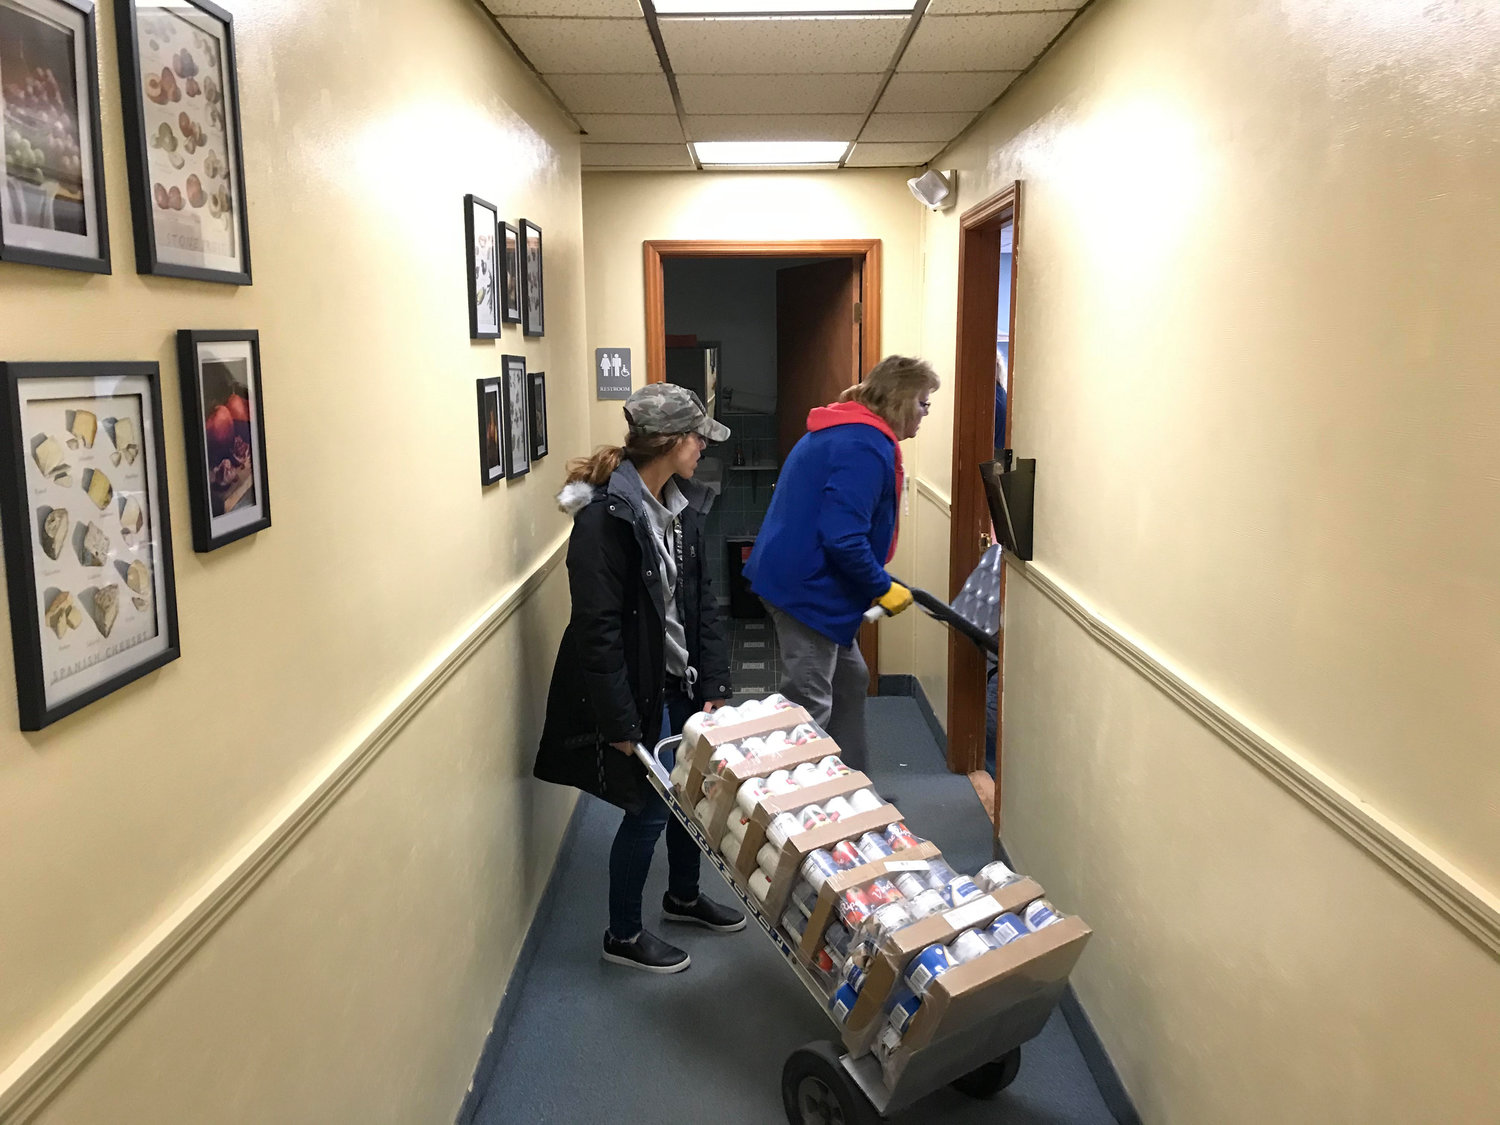 """We have mobilized on two fronts. First, we have been helping feed kids and deliver school food at the school buildings. Simultaneously, we have been helping the local food pantry hand out, unload, and deliver food. Last week alone, we helped feed over 800 families at the food pantry alone. Normal holiday times average 250-300, said Robert McDonough, RVF President and Social Studies Teacher at RVHS"